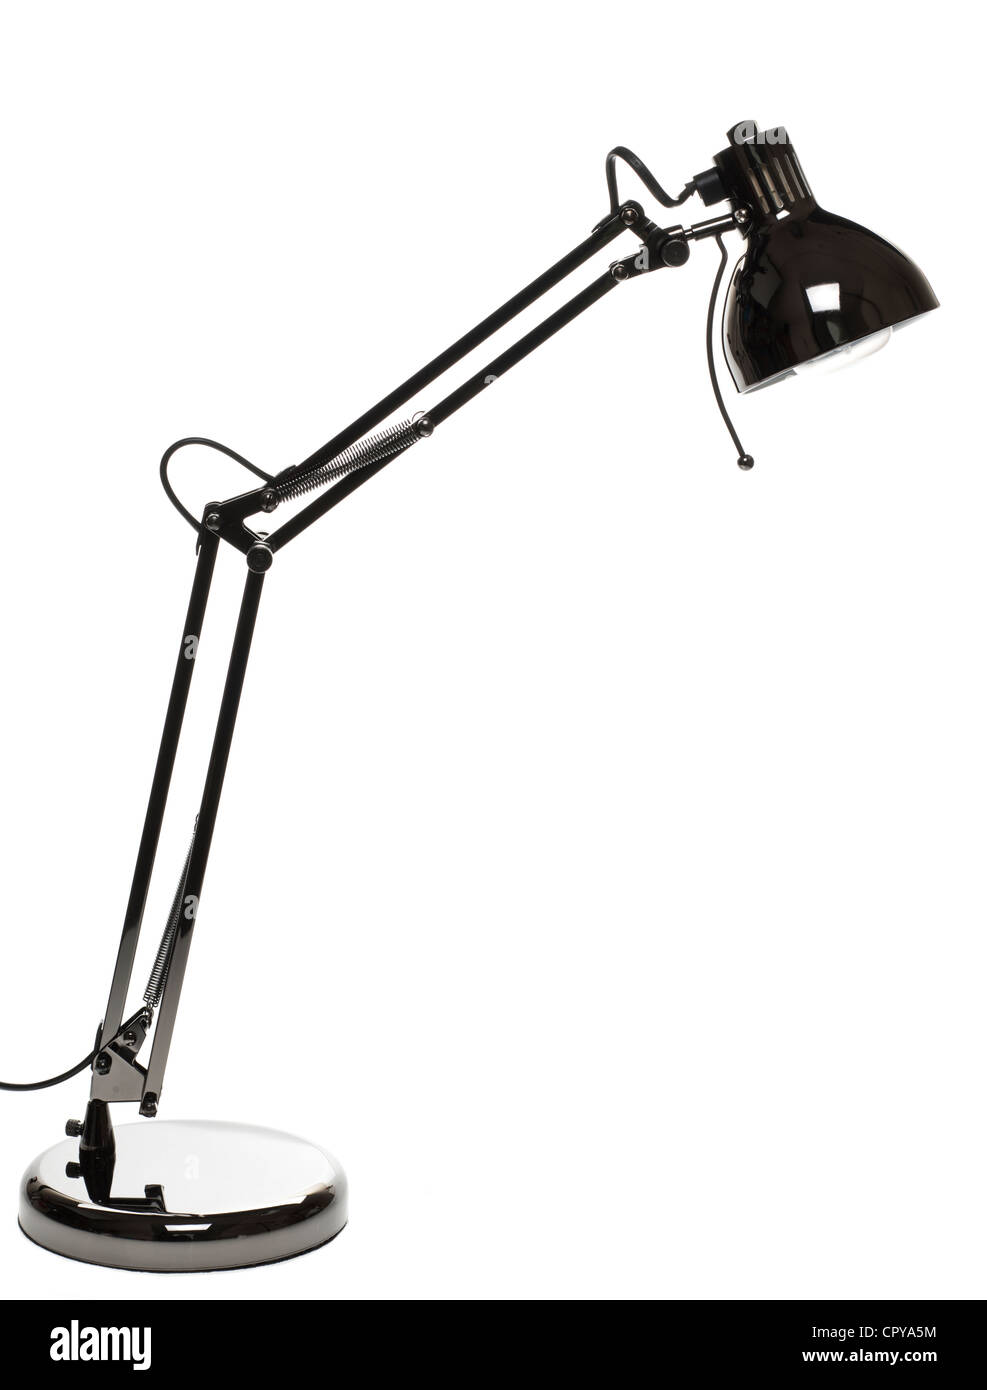 Metal Anglepoise lamp - Stock Image